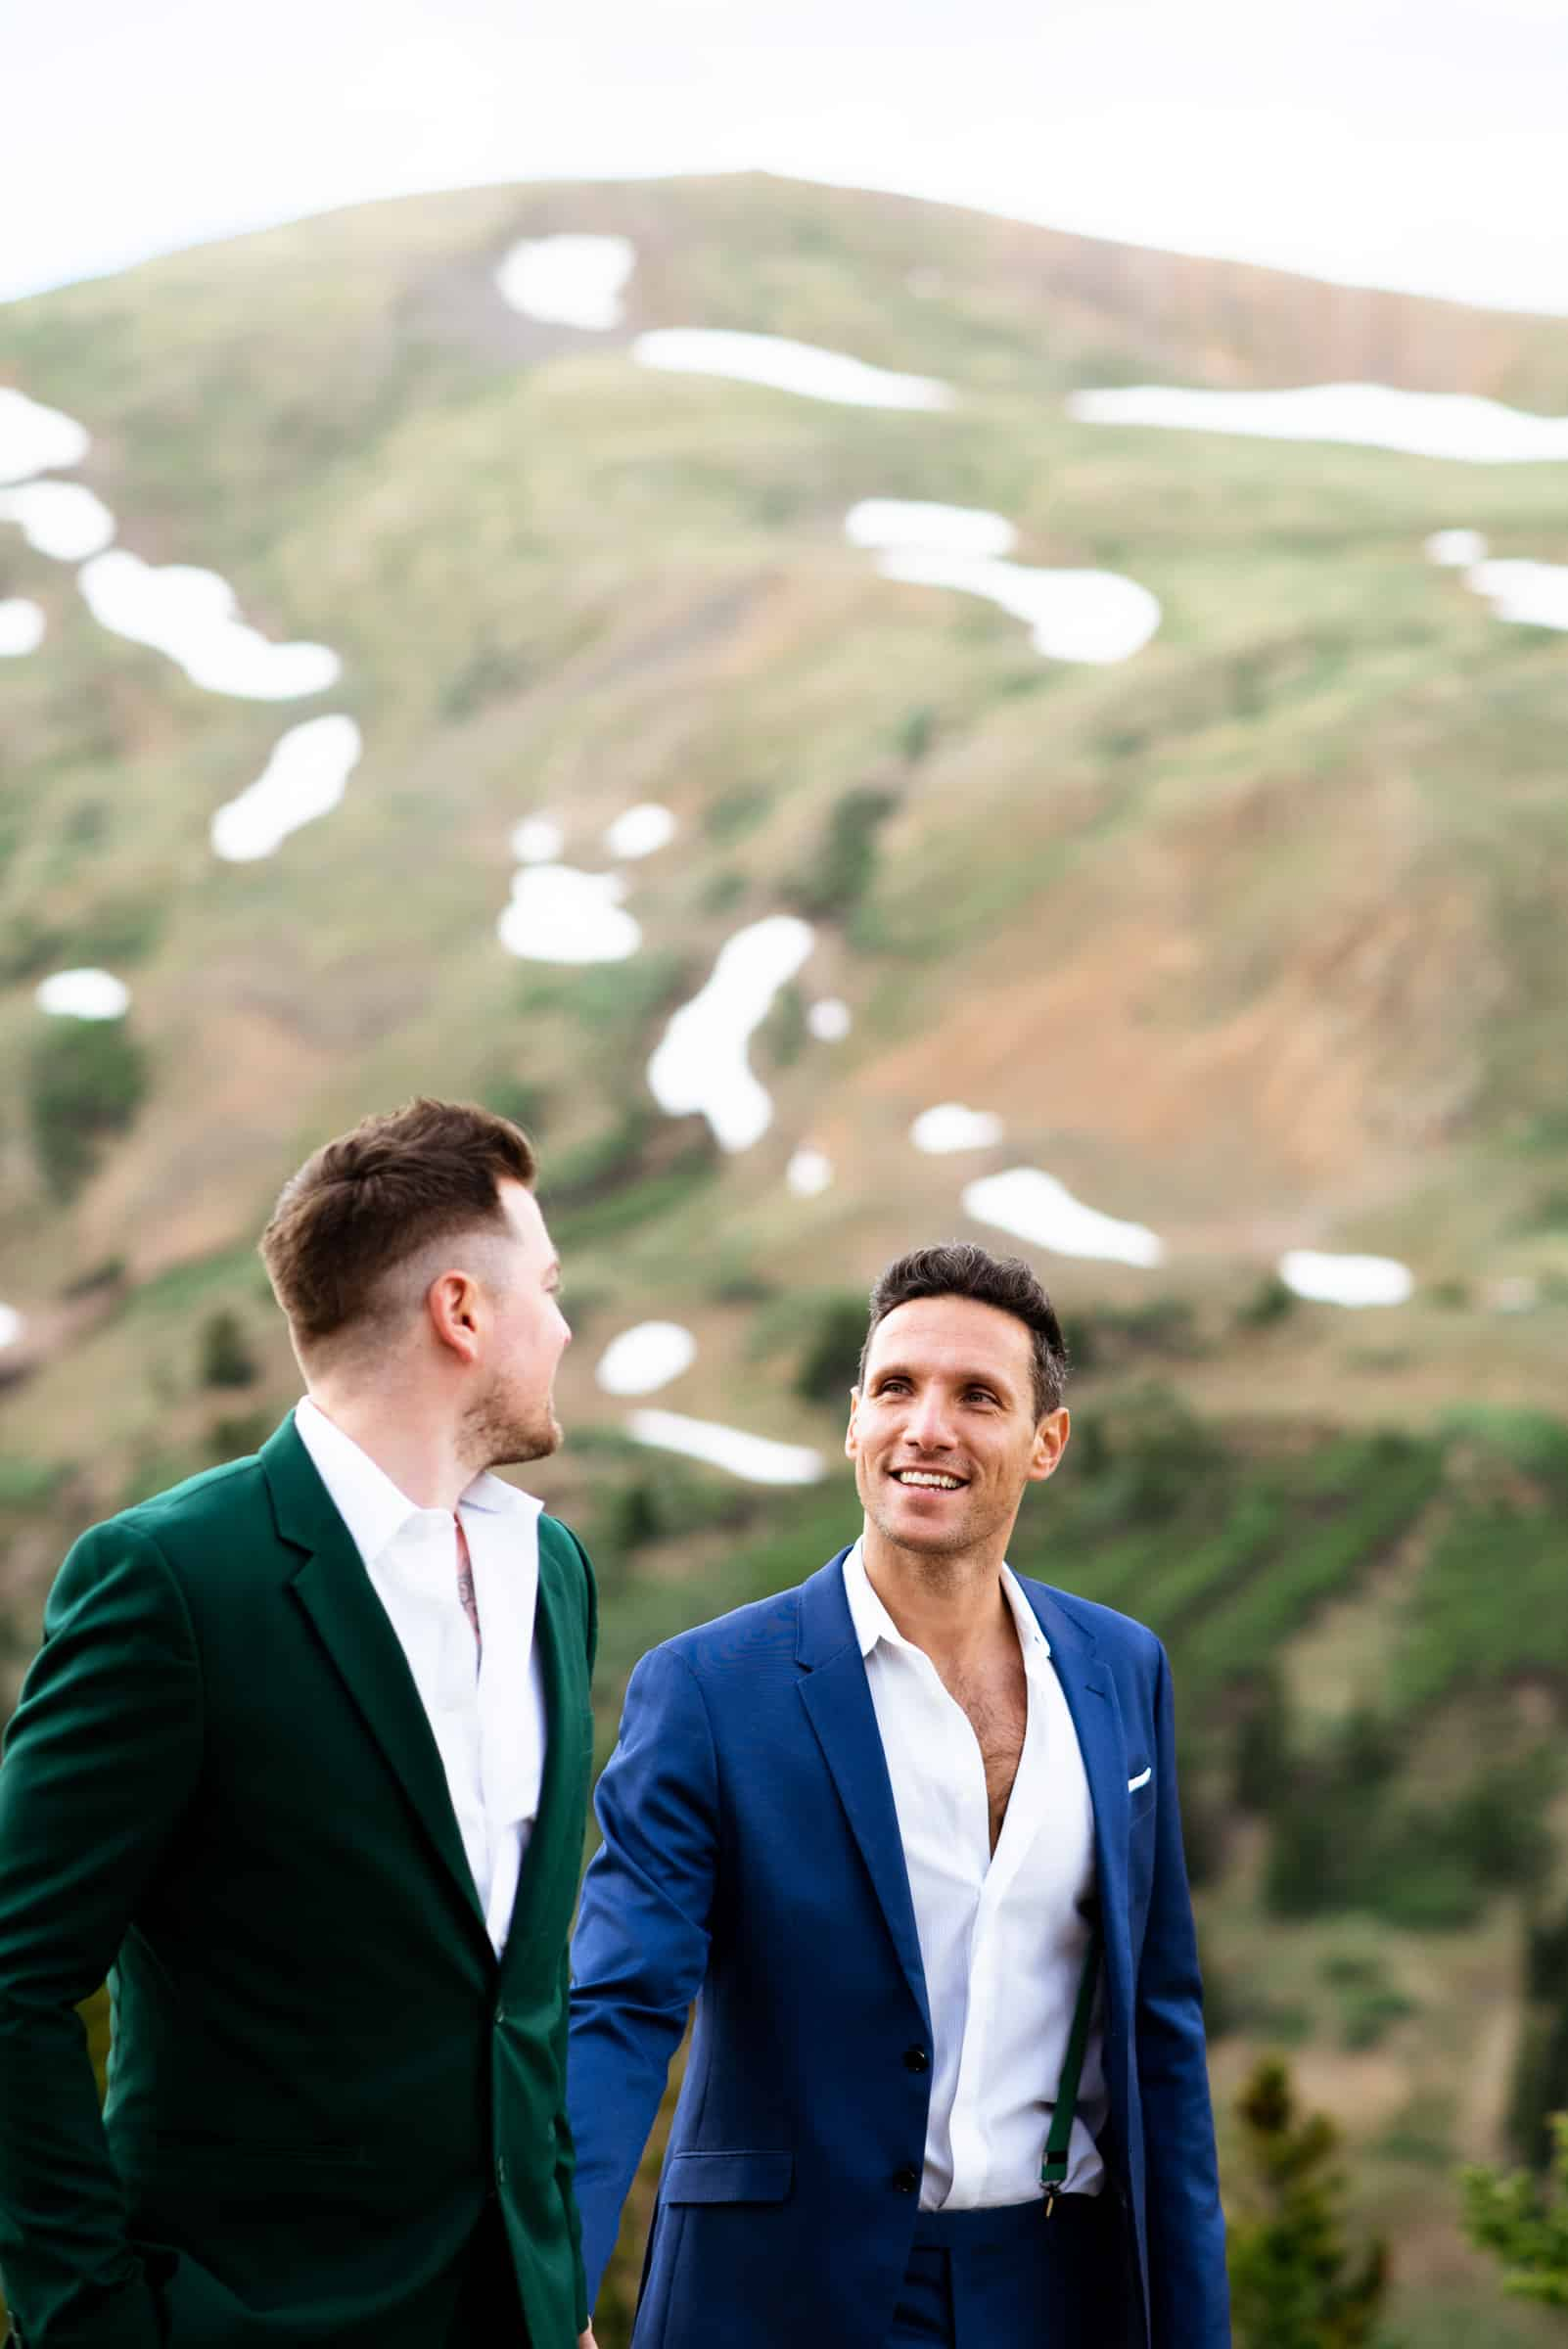 Gay Colorado Elopement | Josie V Photography